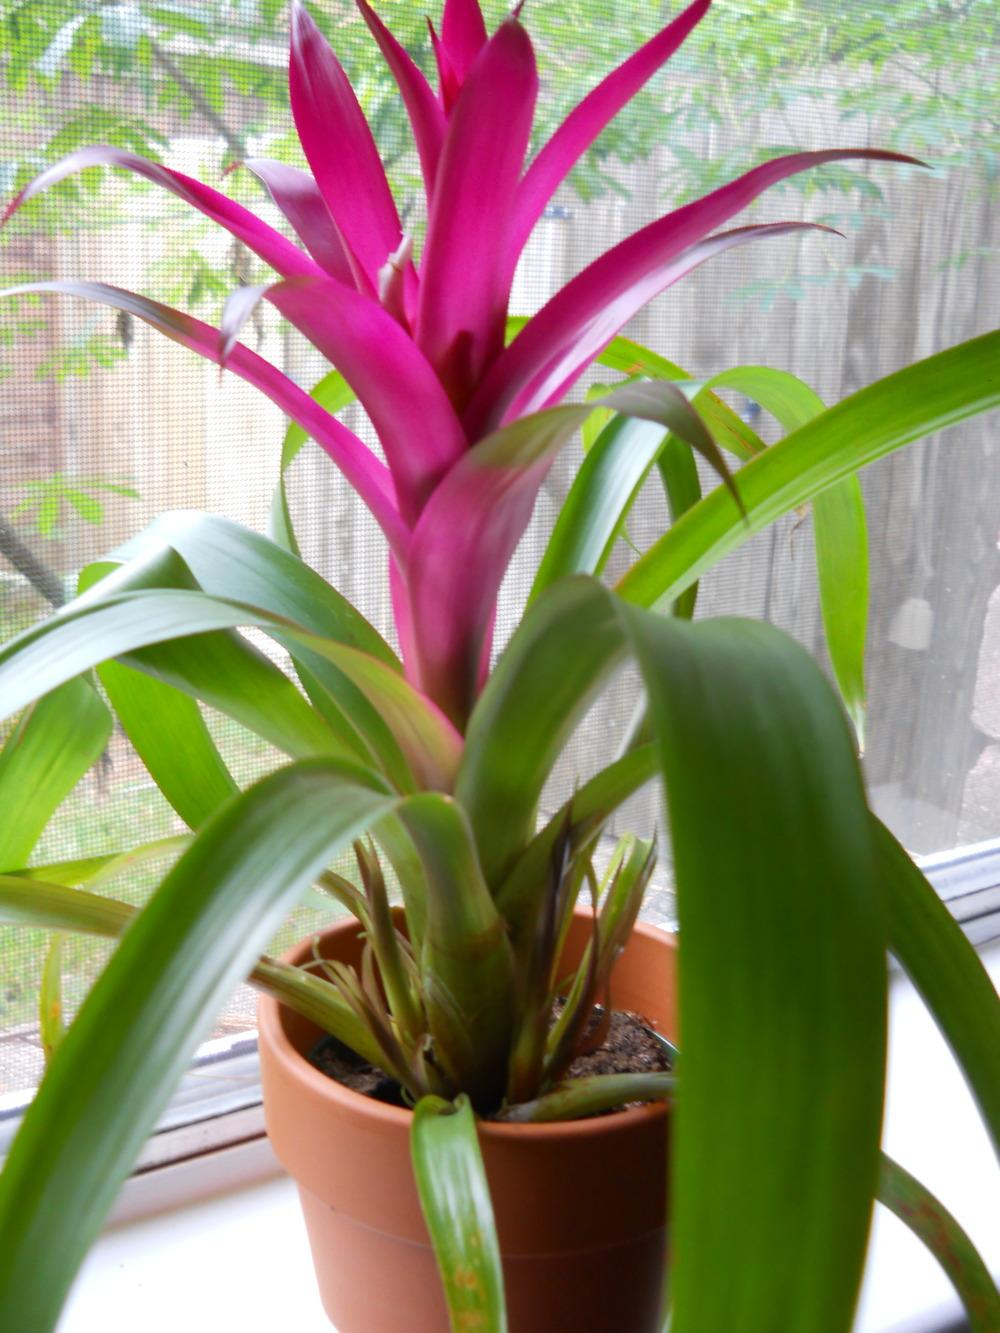 Bromeliads How To Keep The Color Going: A How-To Guide For Propagating Bromeliads: Bromeliad